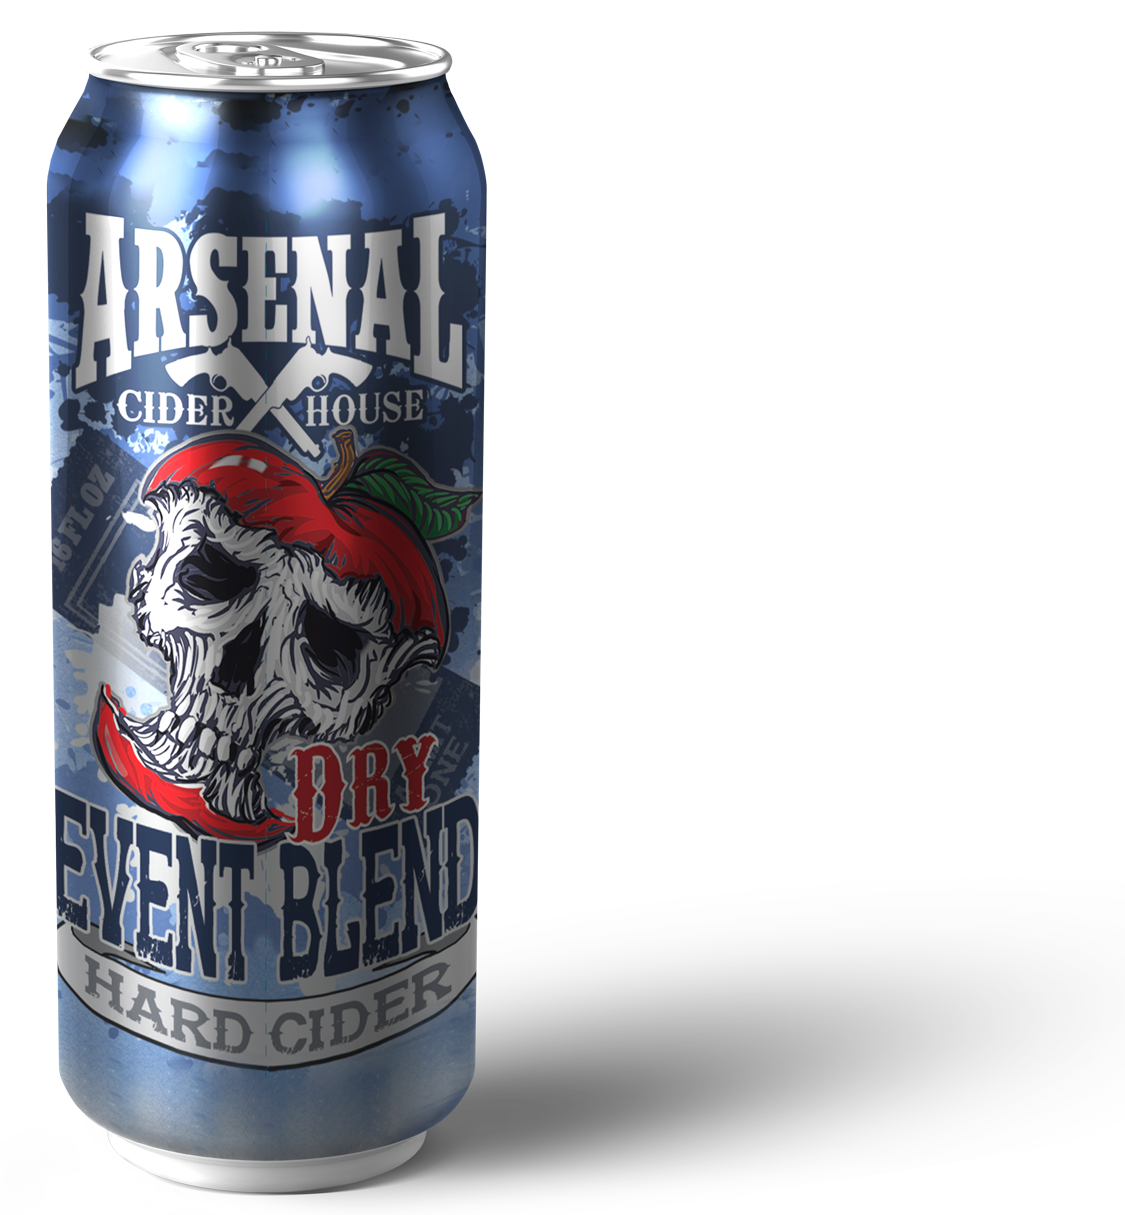 Event Blend Off-Dry Hard Cider by Arsenal Cider House Can